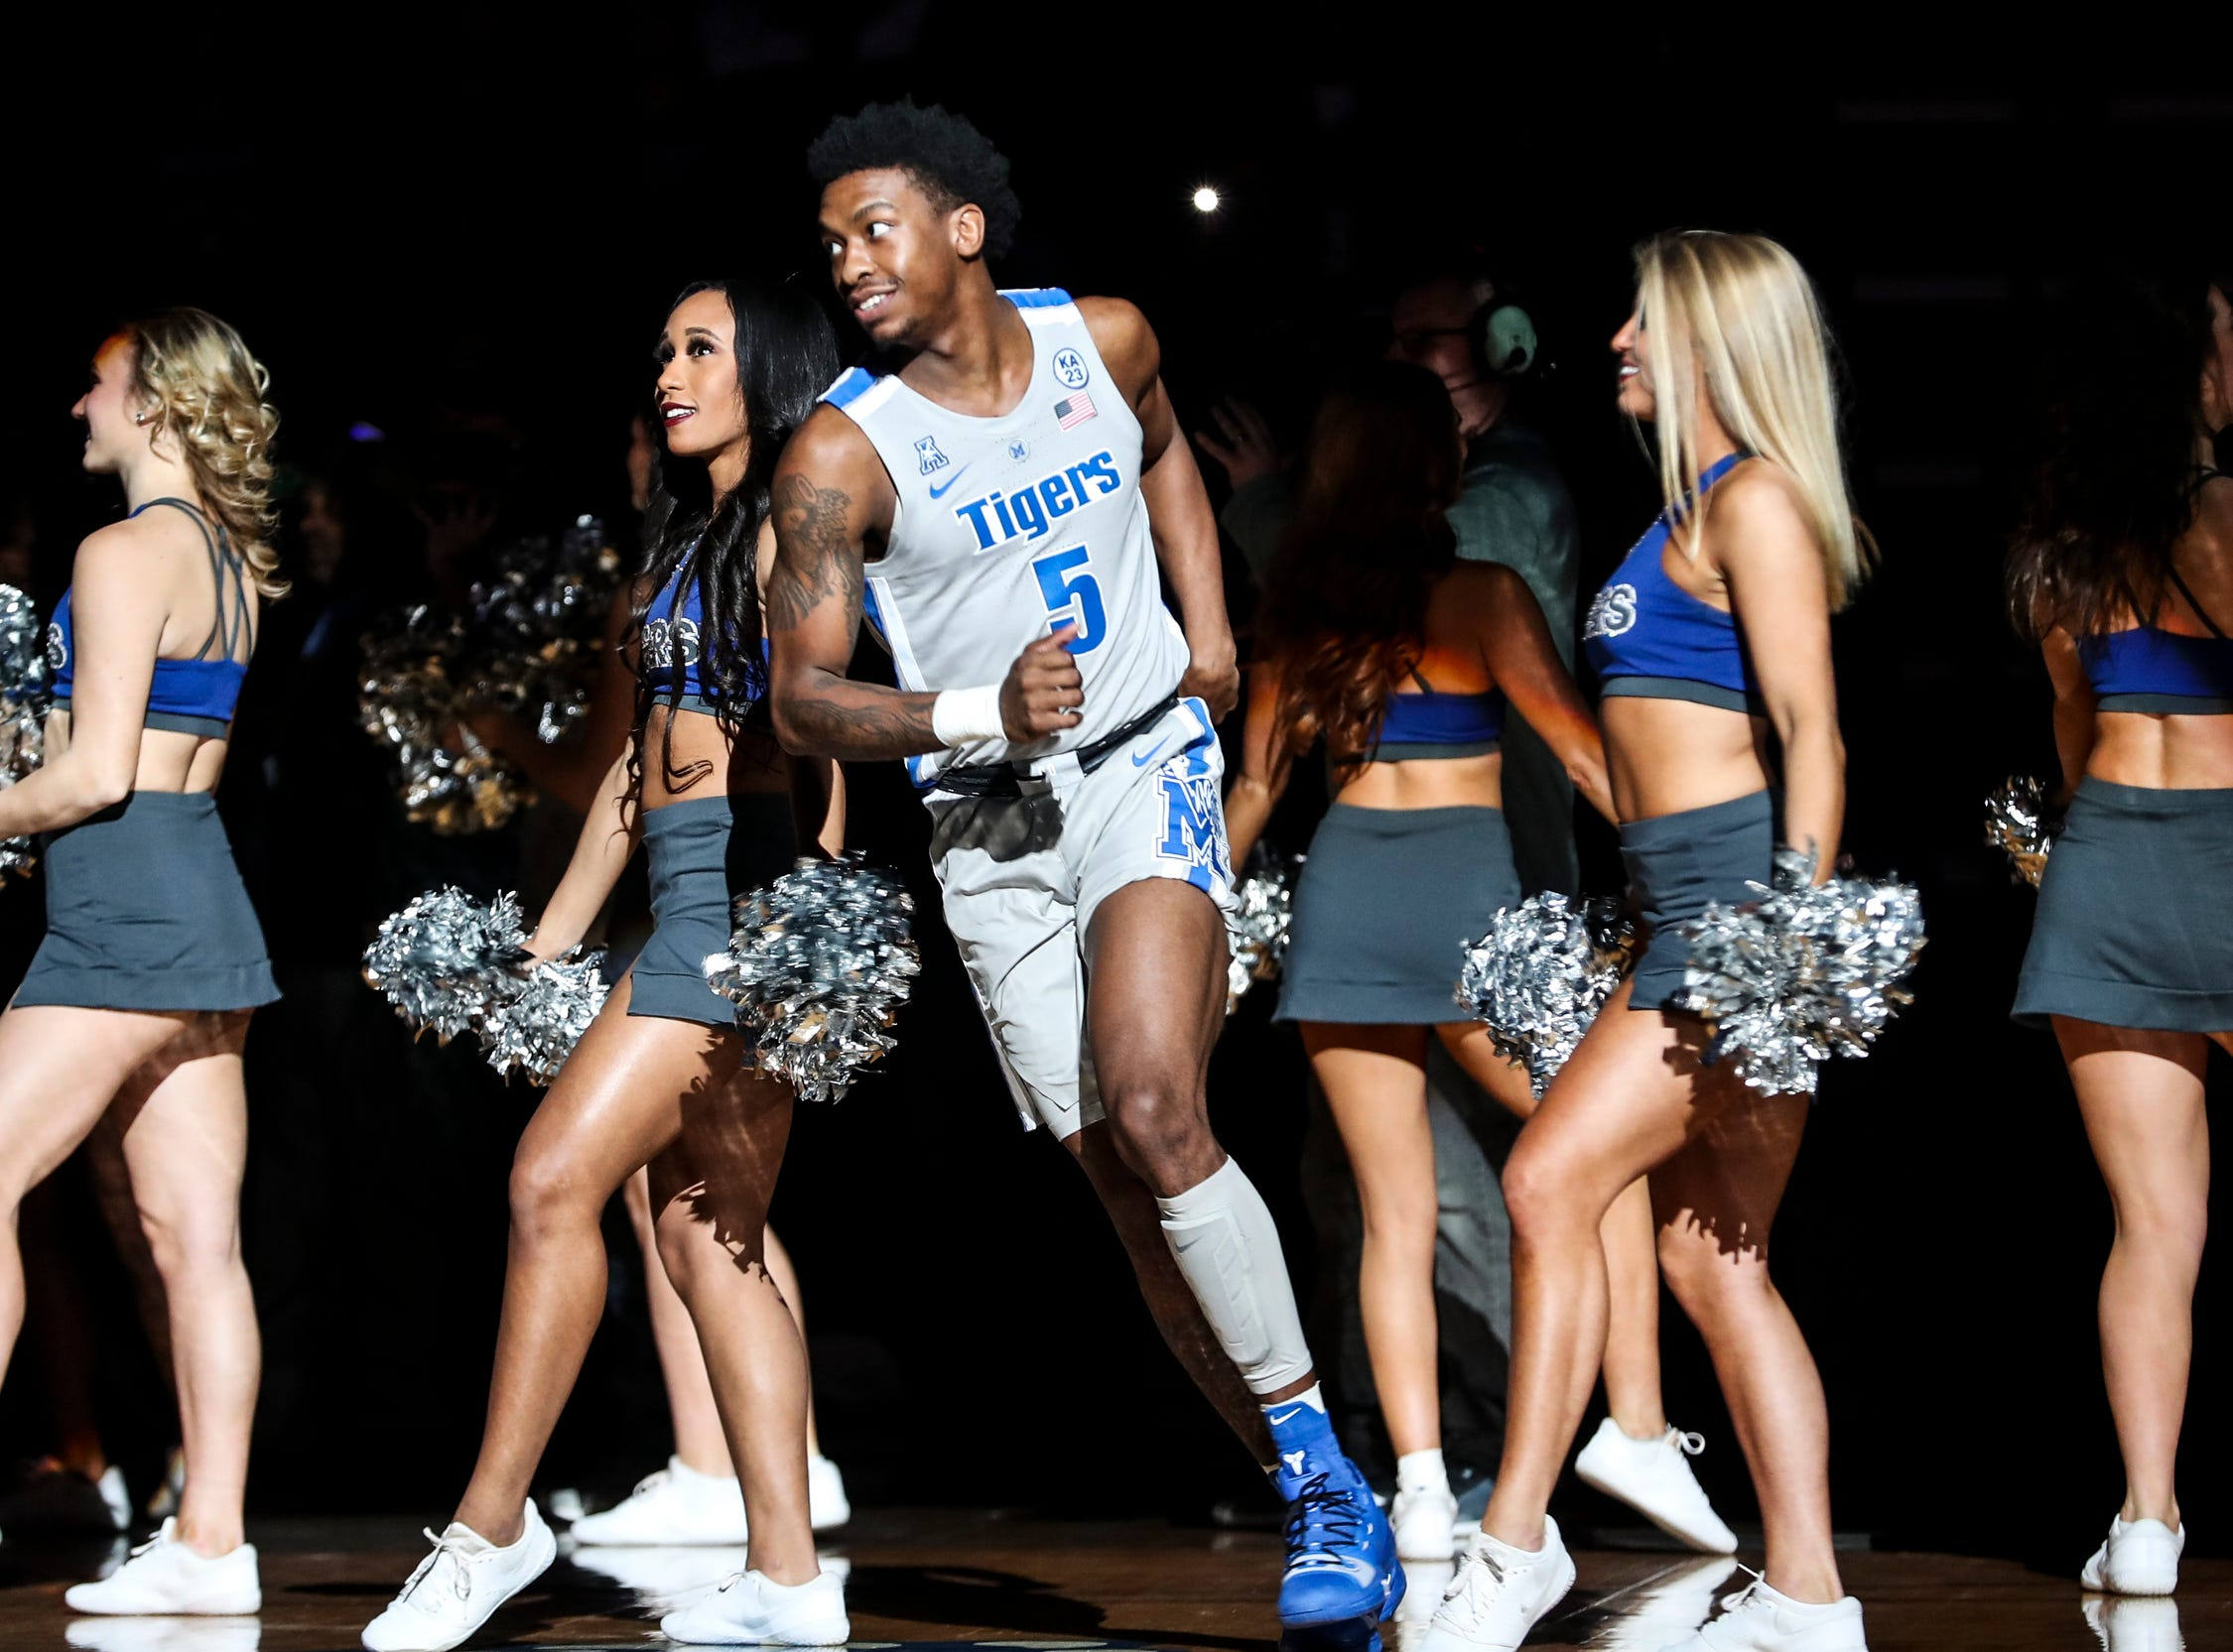 January 27 2019 - Memphis' Kareem Brewton Jr. is introduced before the start of Sunday afternoon's game against UCF at the FedExForum in Memphis.